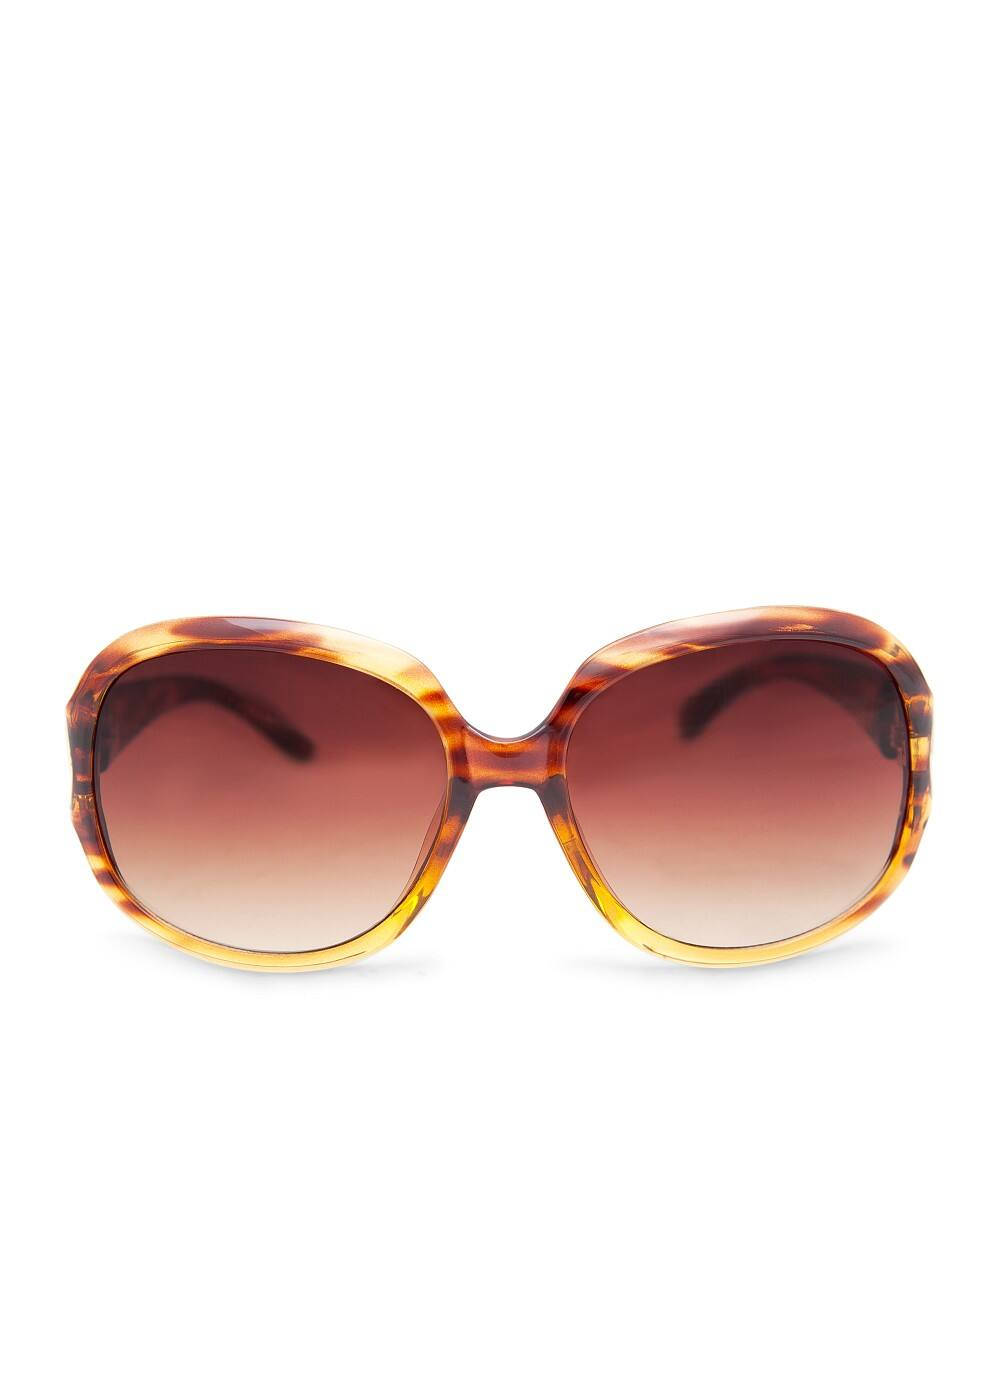 Metallic detail sunglasses